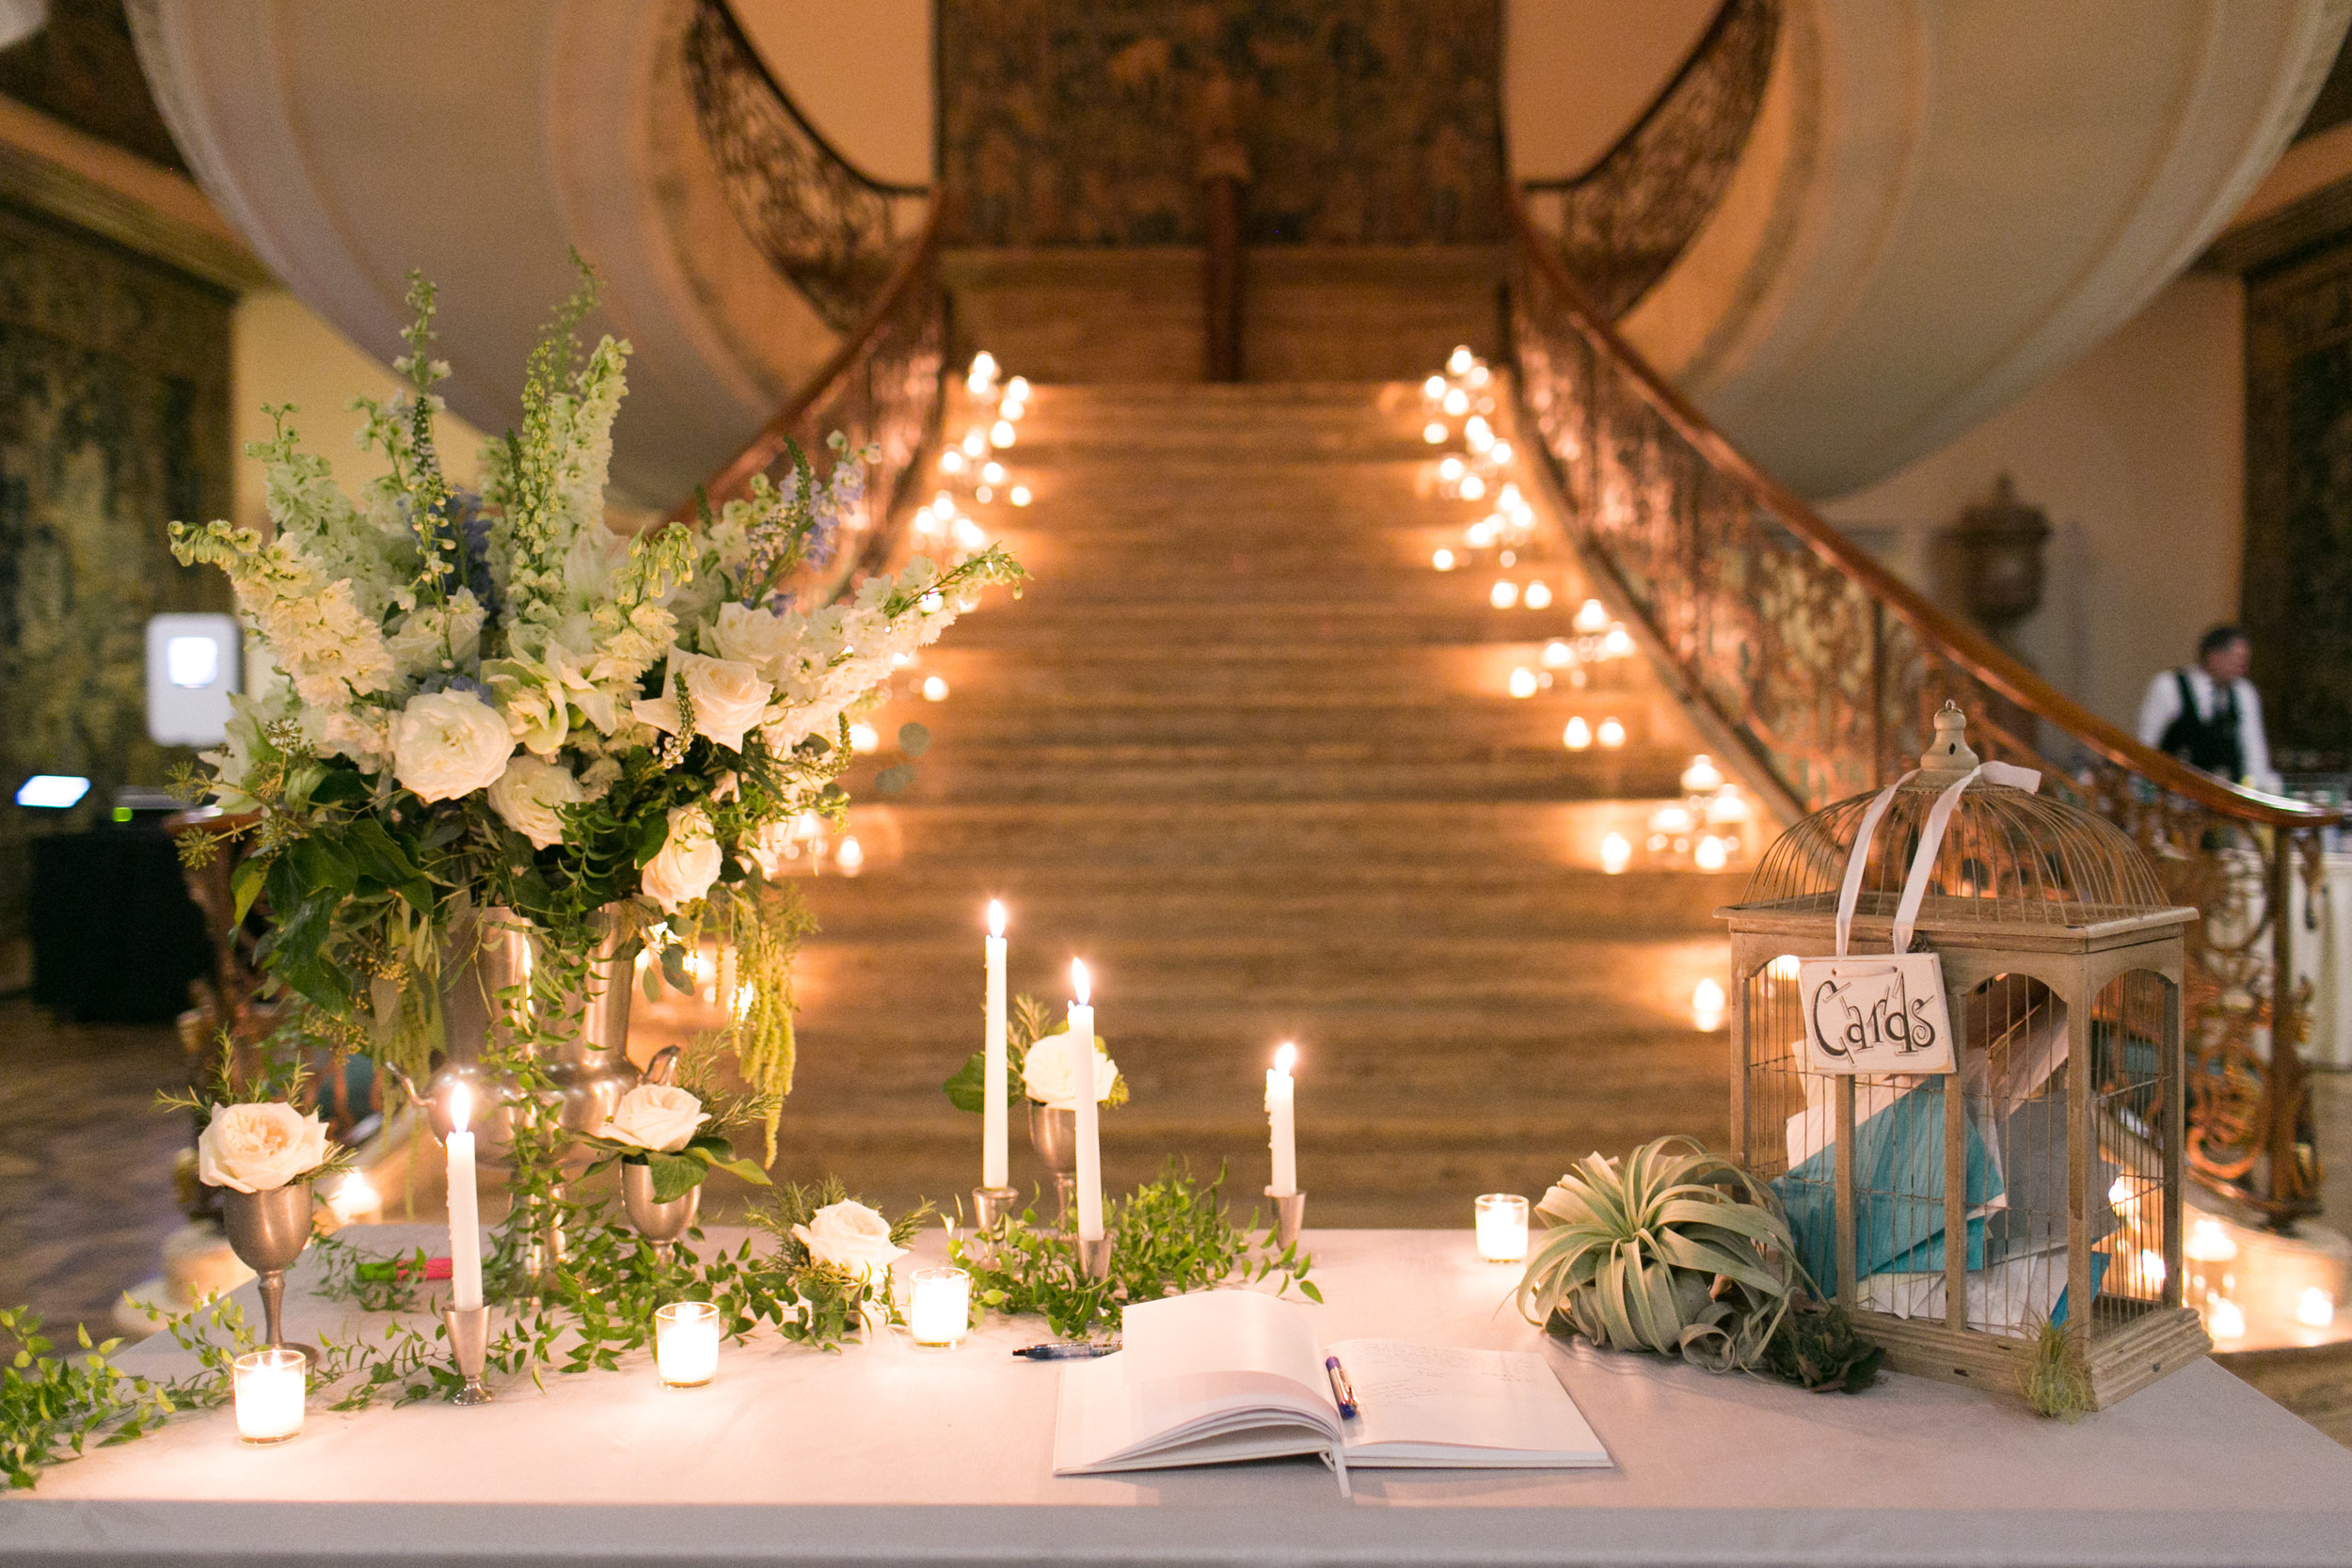 There's that staircase we were talking about!  Lined with dozens of floating candles, it serves as another perfect backdrop for this wedding's decor.  Here we're featuring the guest book table, with scattered votives and tapered candles lighting up the card box and guest book.  Scattered smilax, pewter pieces with rose heads, and a pewter champagne bucket holding an arrangement of white orchids, roses, and greenery complete this serene setting.